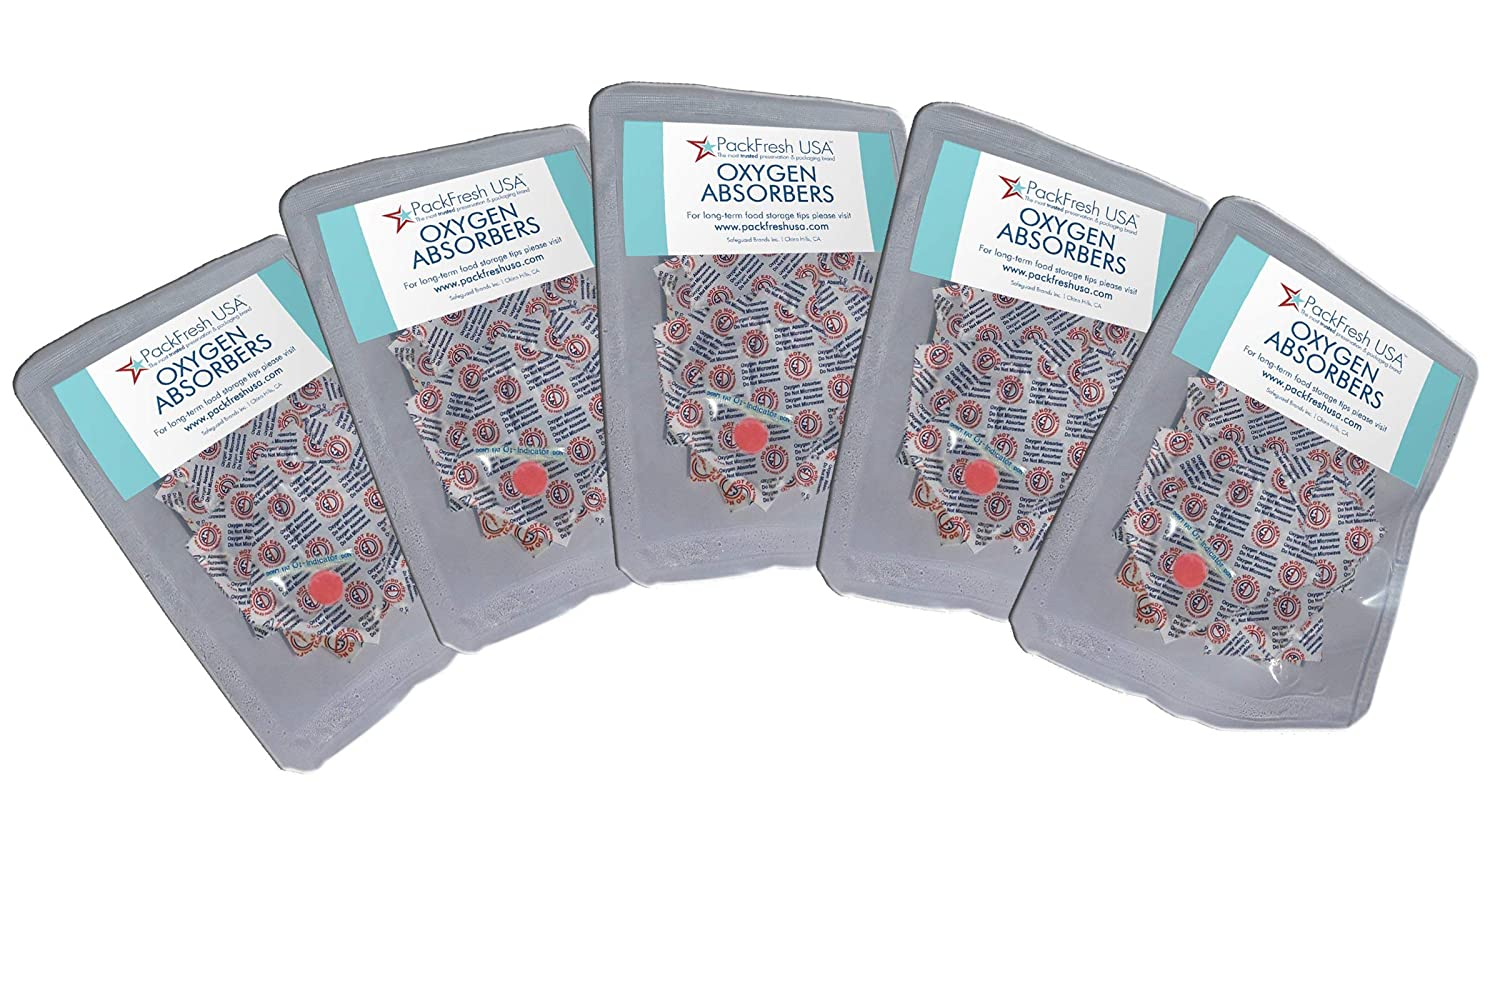 500cc Oxygen Absorbers in 10-packs (5 x 10-Packs) with PackFreshUSA LTFS Guide